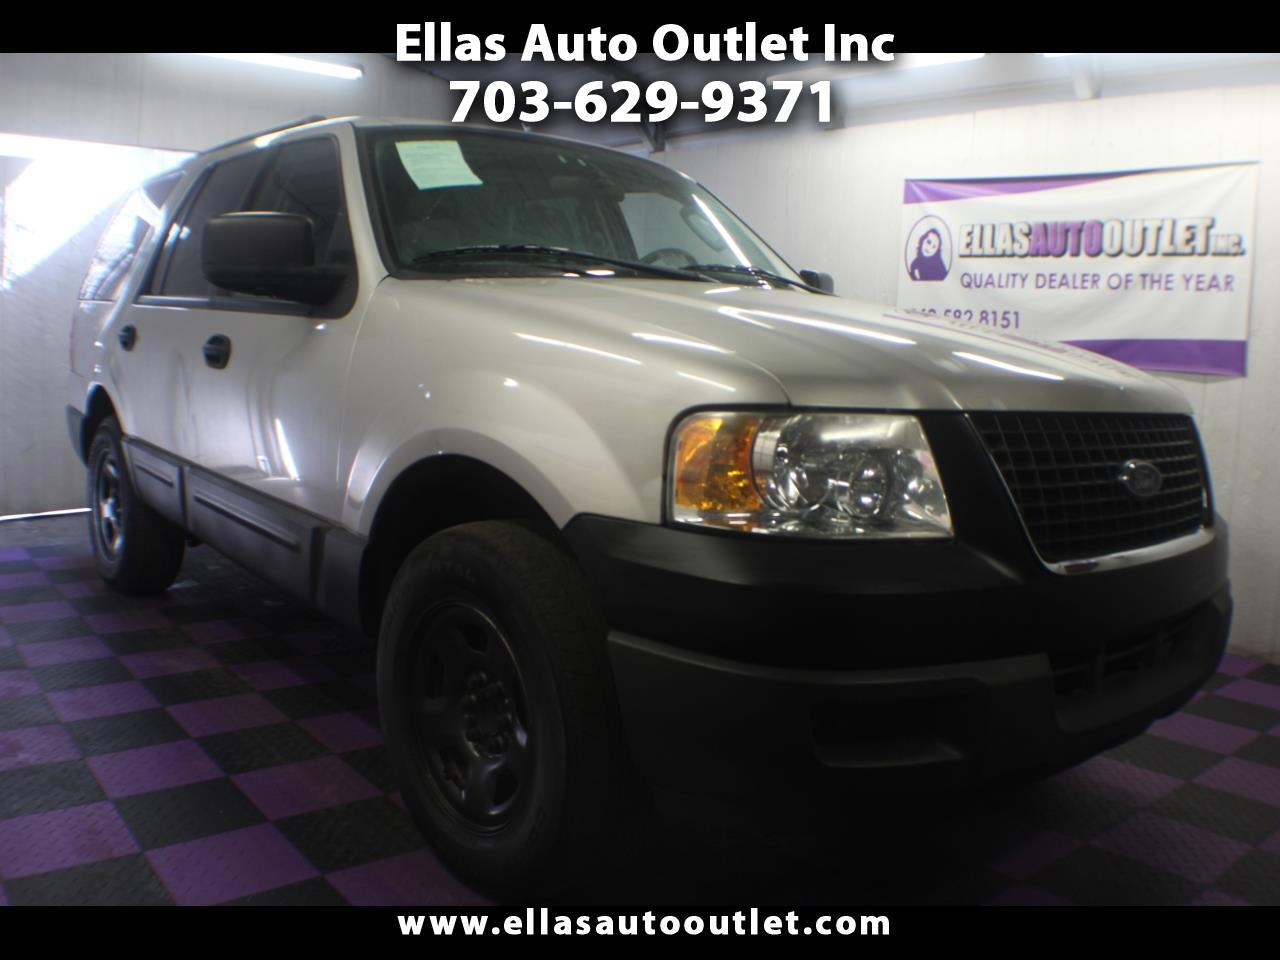 2006 Ford Expedition 4dr XLS